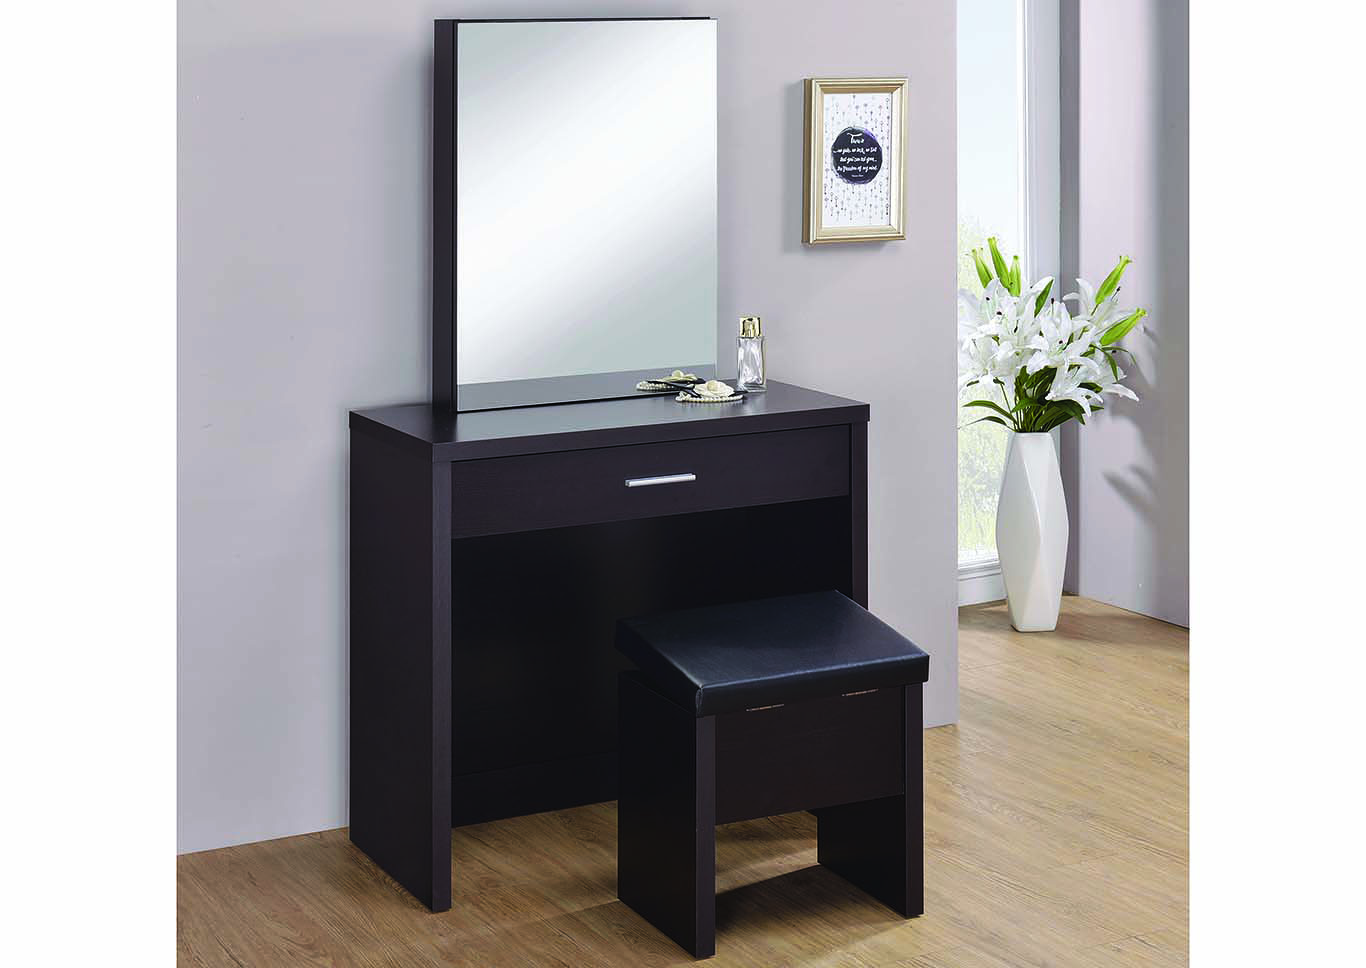 Cappuccino 2-Piece Vanity Set,Coaster Furniture